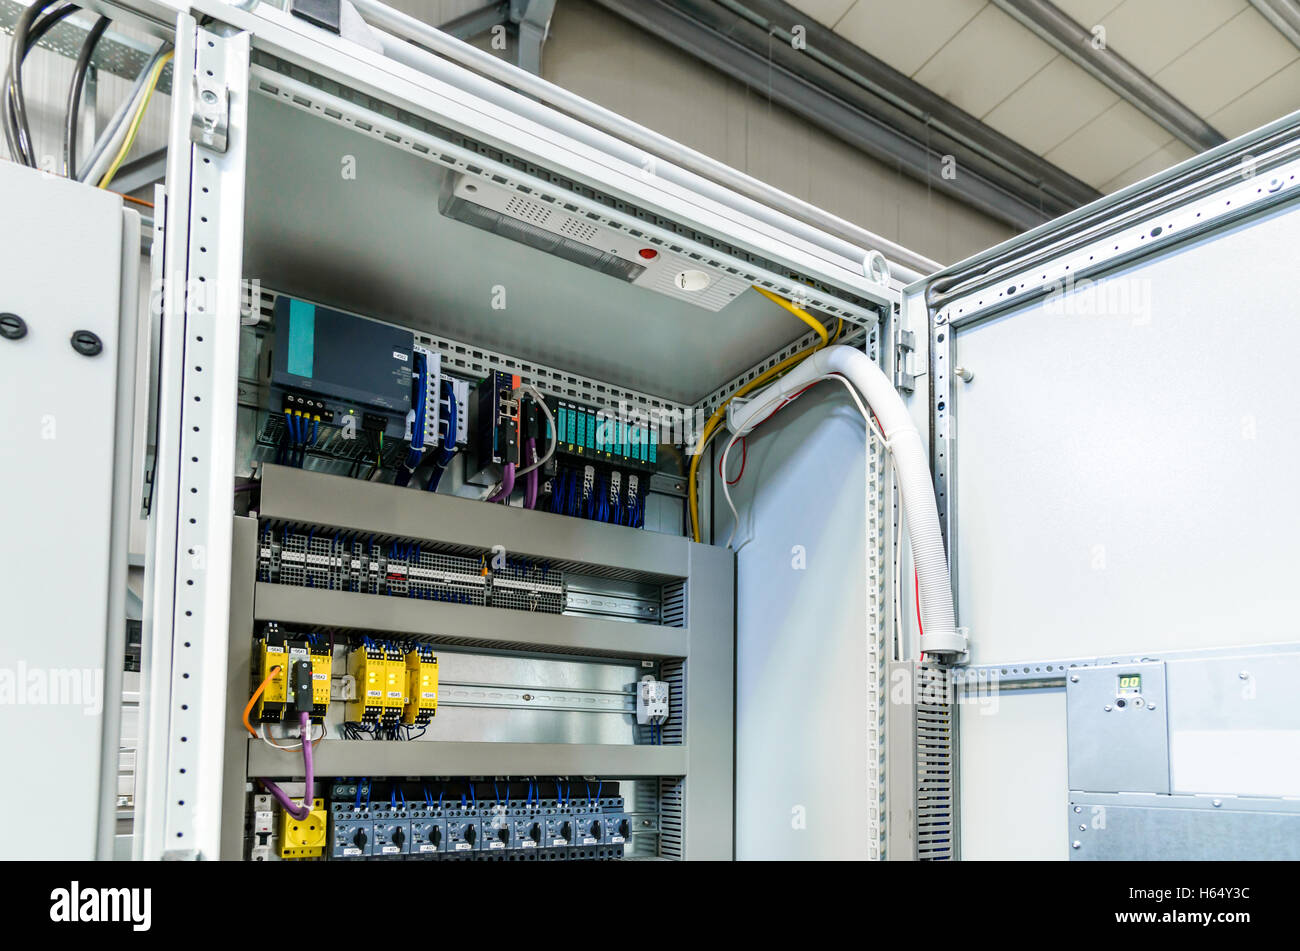 Electrical Panel Stock Photos Images Alamy Relay Automatic Programming Has Control Over Power Lines Located Inside Of The Switch